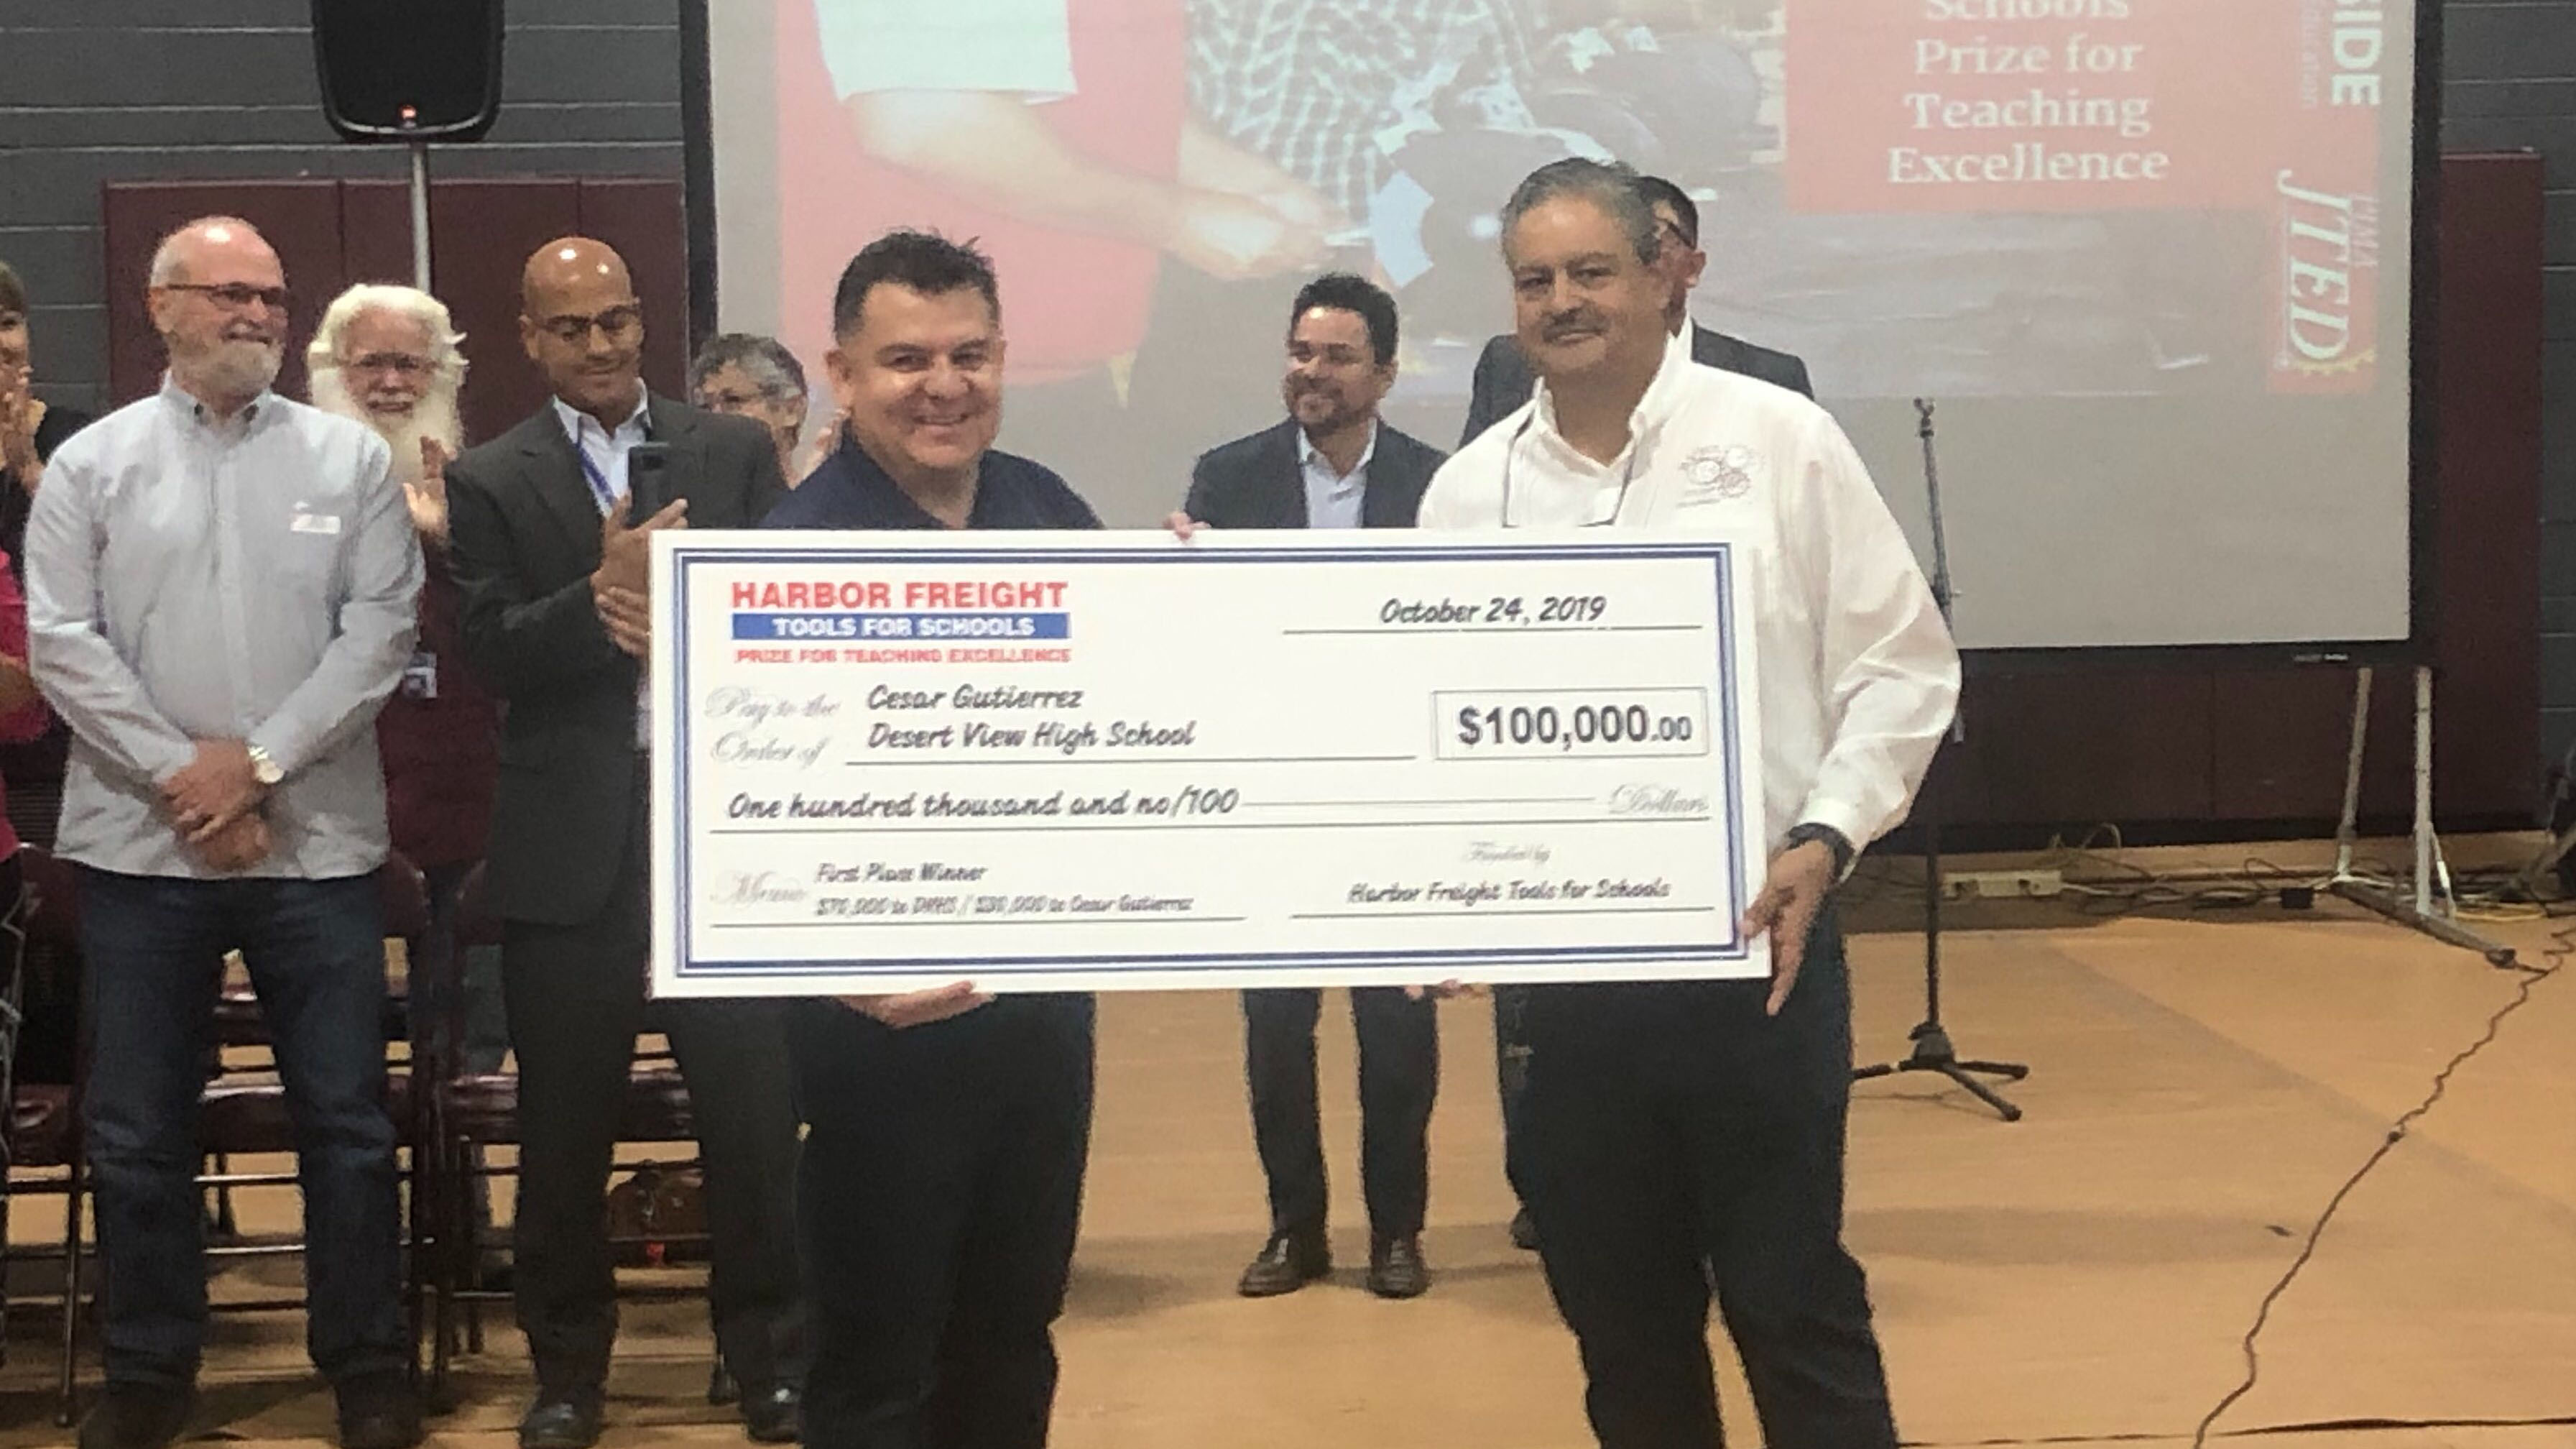 Cesar Gutierrez, right, receives the Harbor Freight Tools For Schools award for teacher excellence.